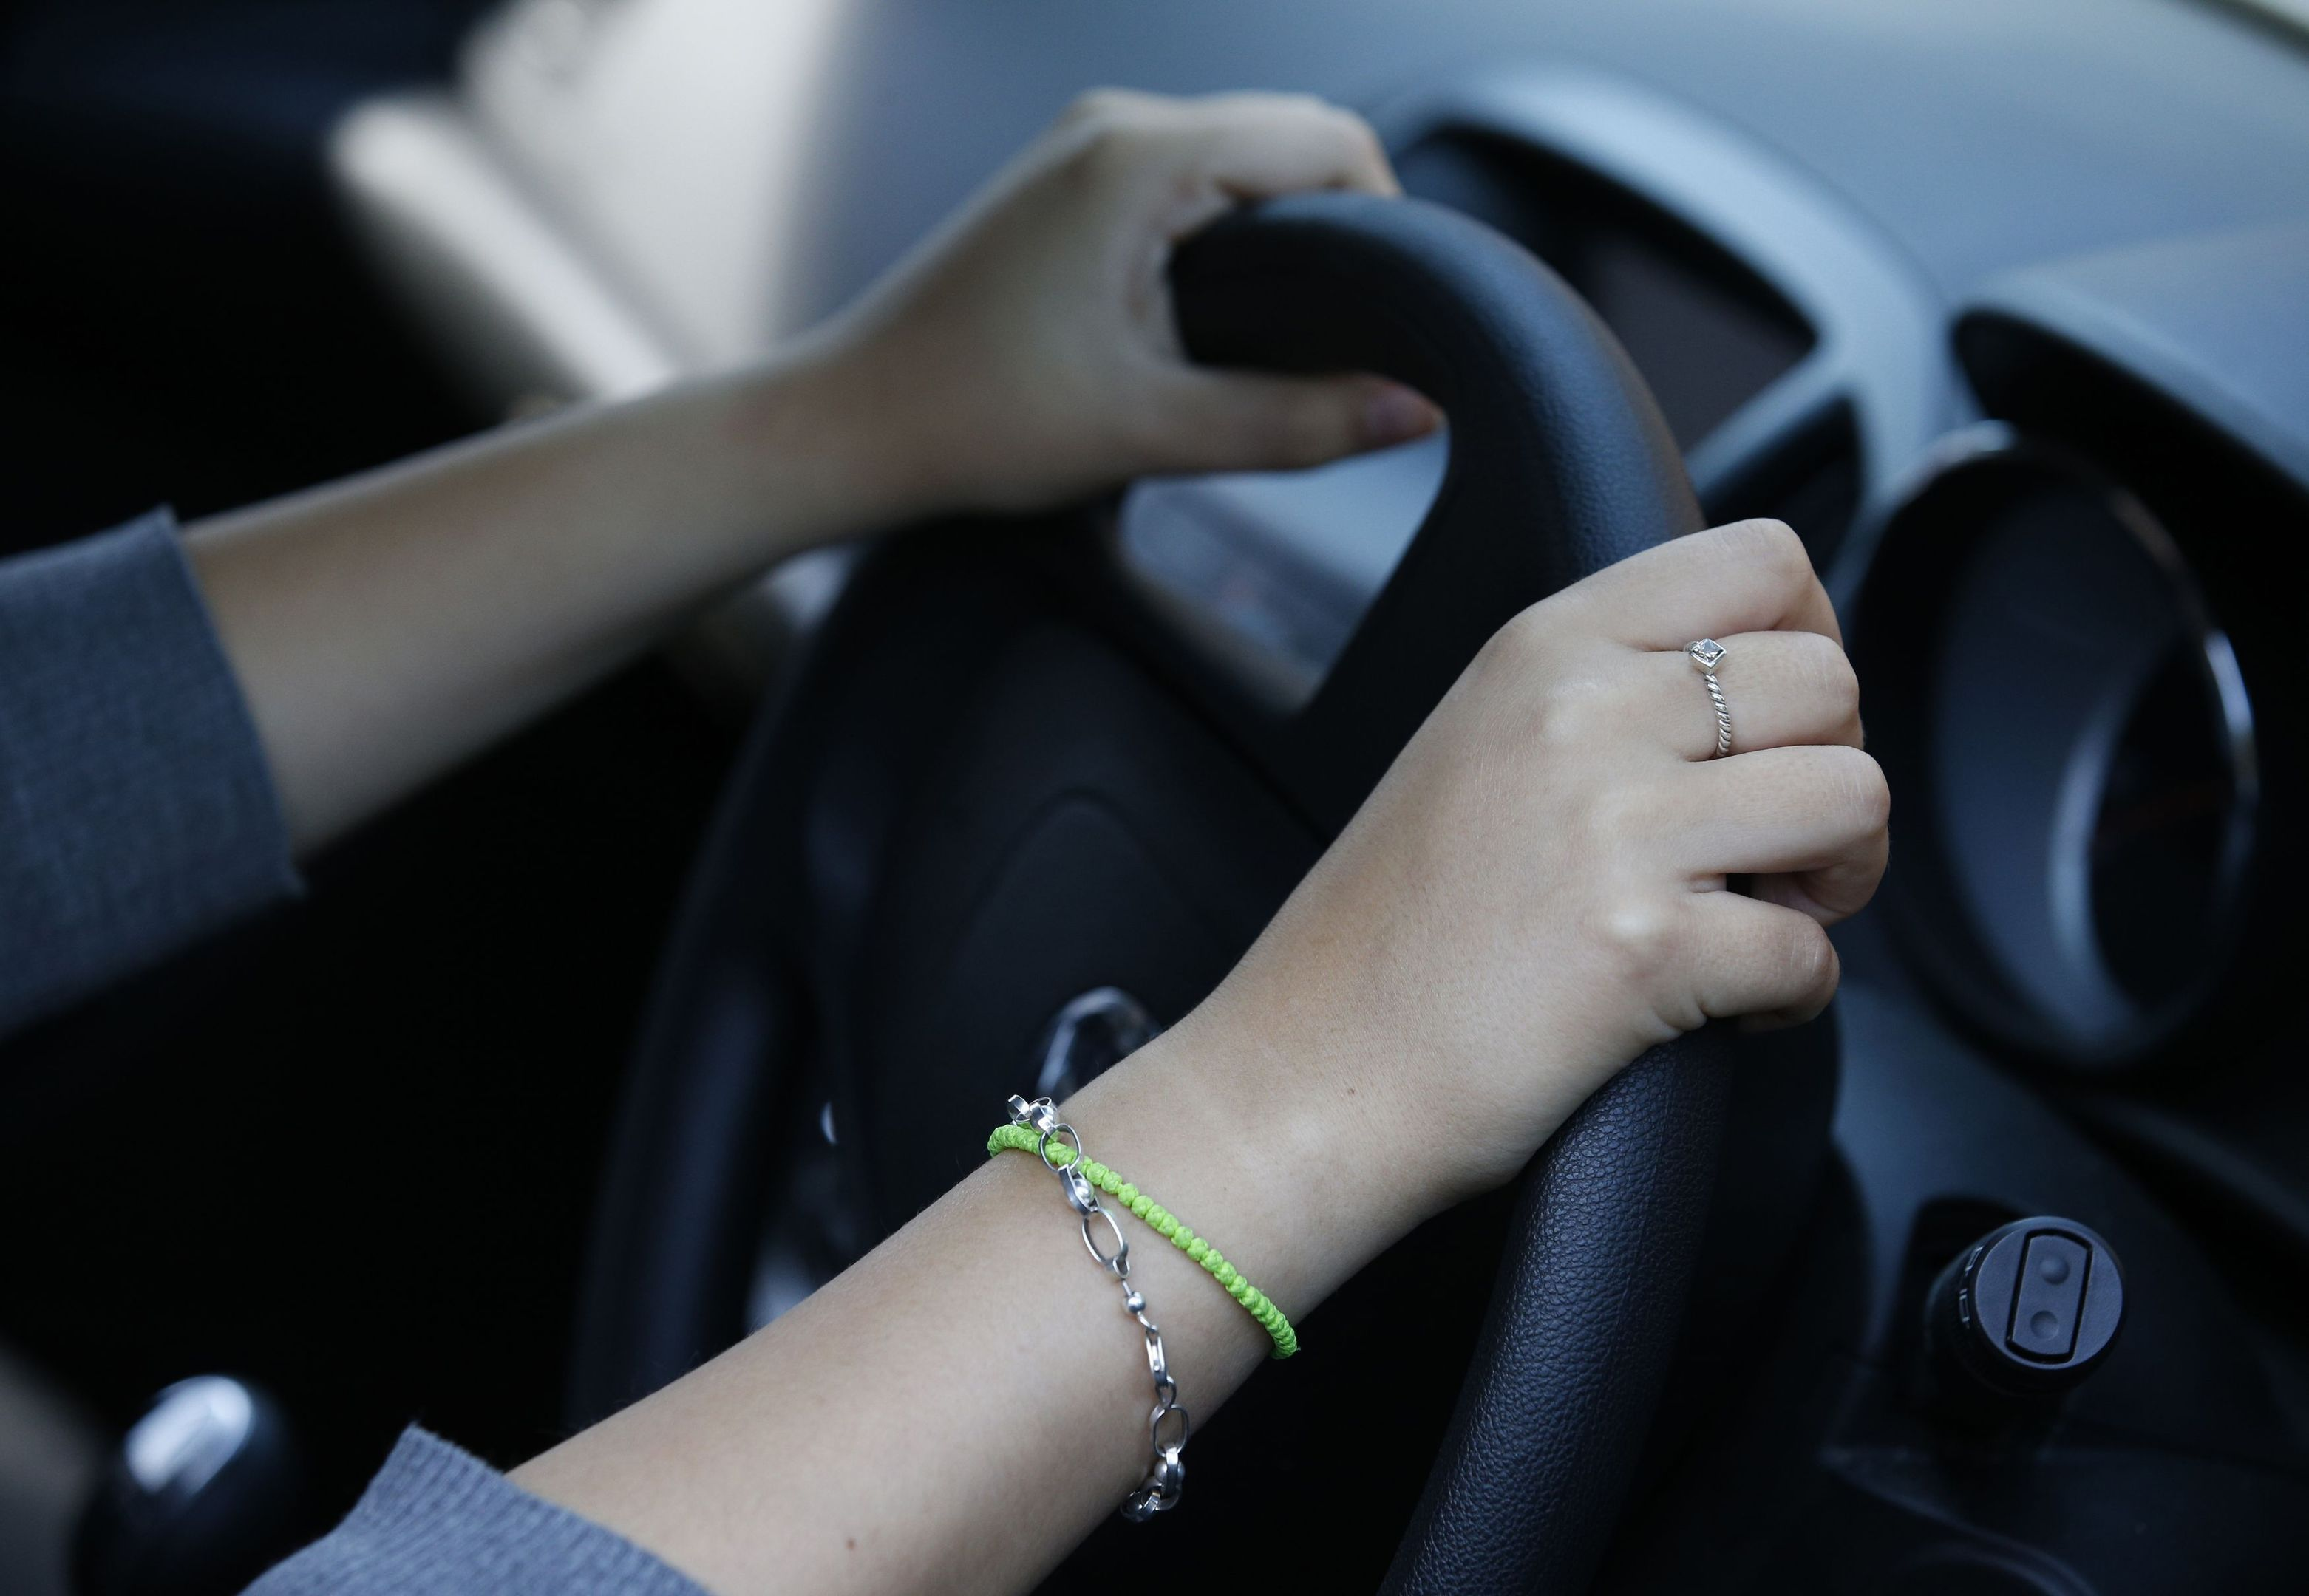 Drivers of all ages except the under-21s now face typically paying record amounts for their cover. (Jonathan Brady/PA Wire)